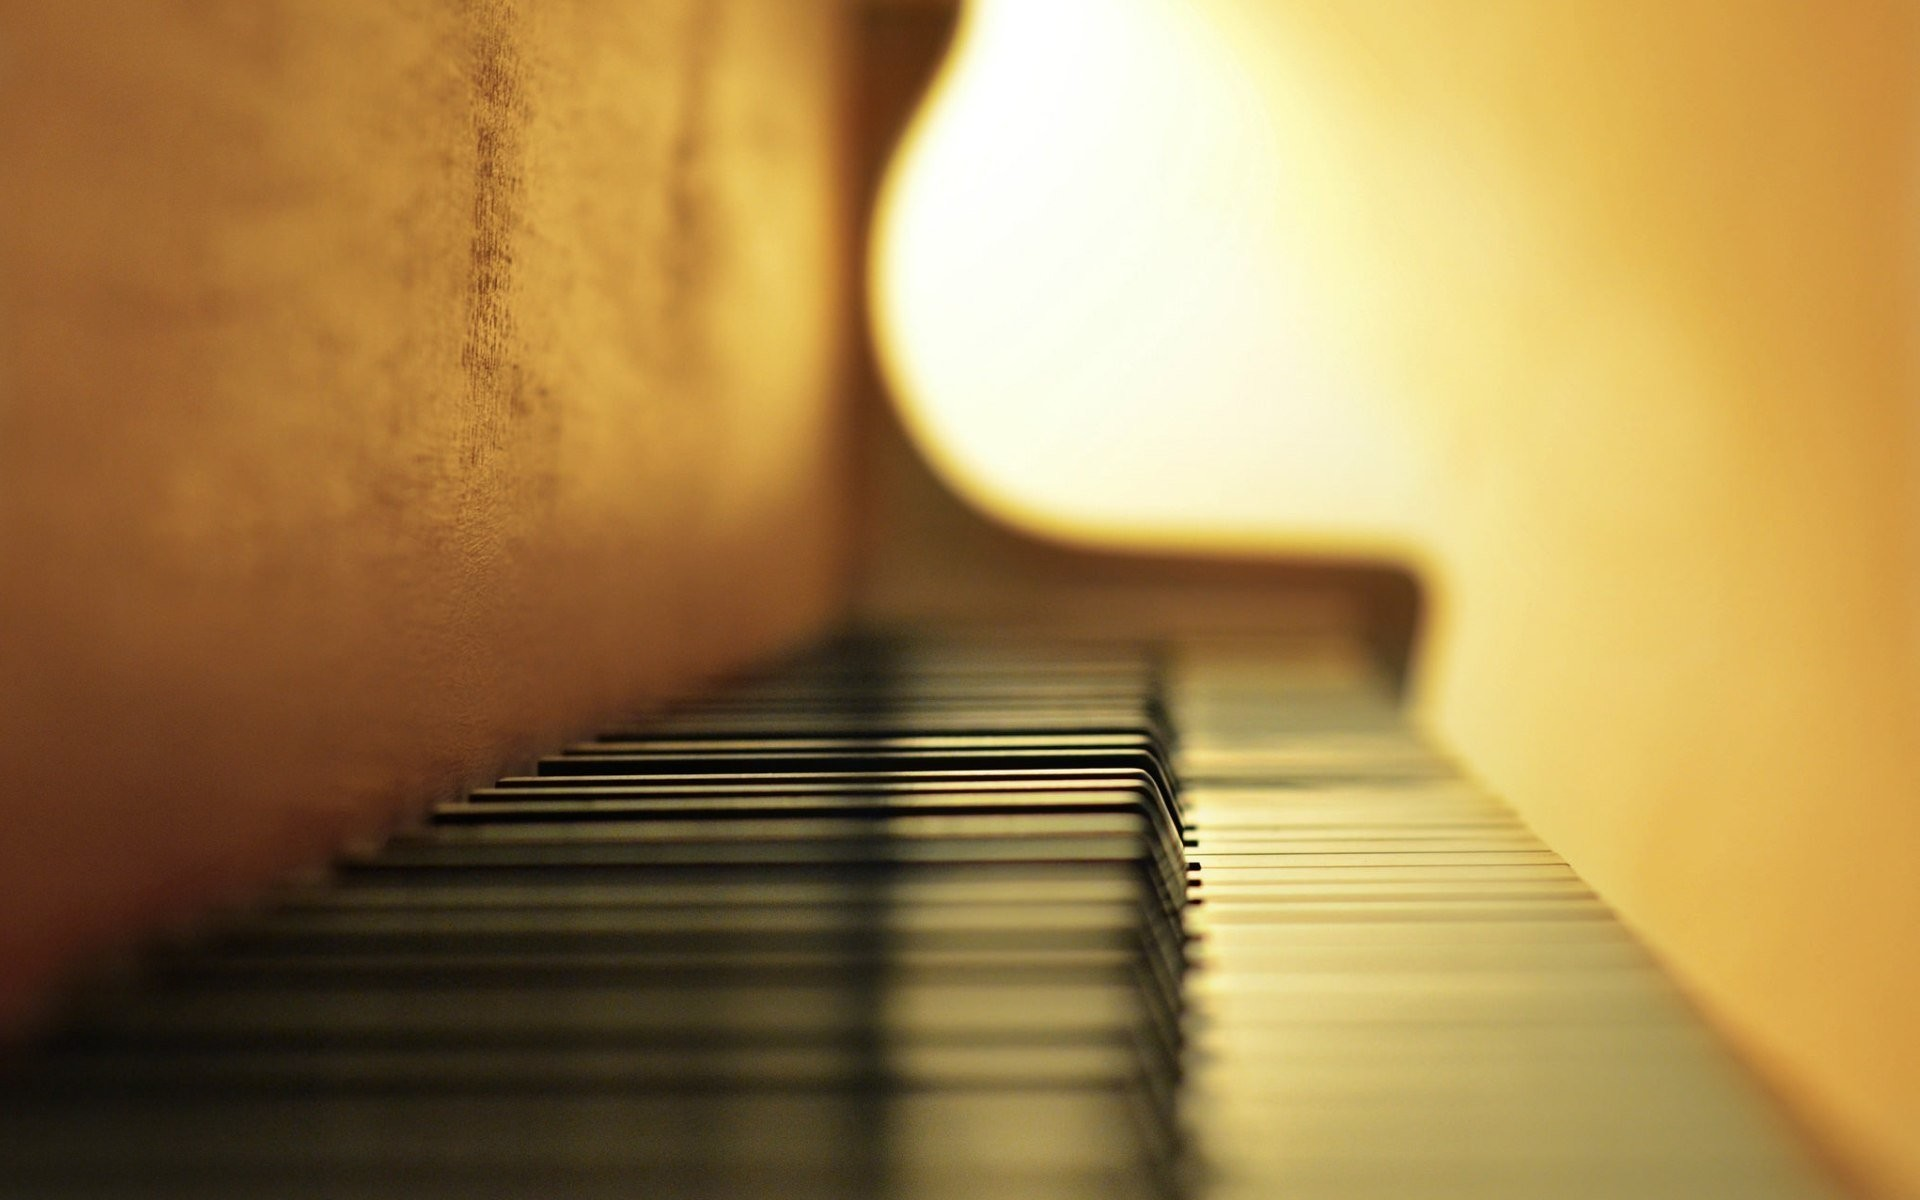 Hd Christian Quotes Wallpapers 1920x1080 Piano Background Music 183 ① Wallpapertag